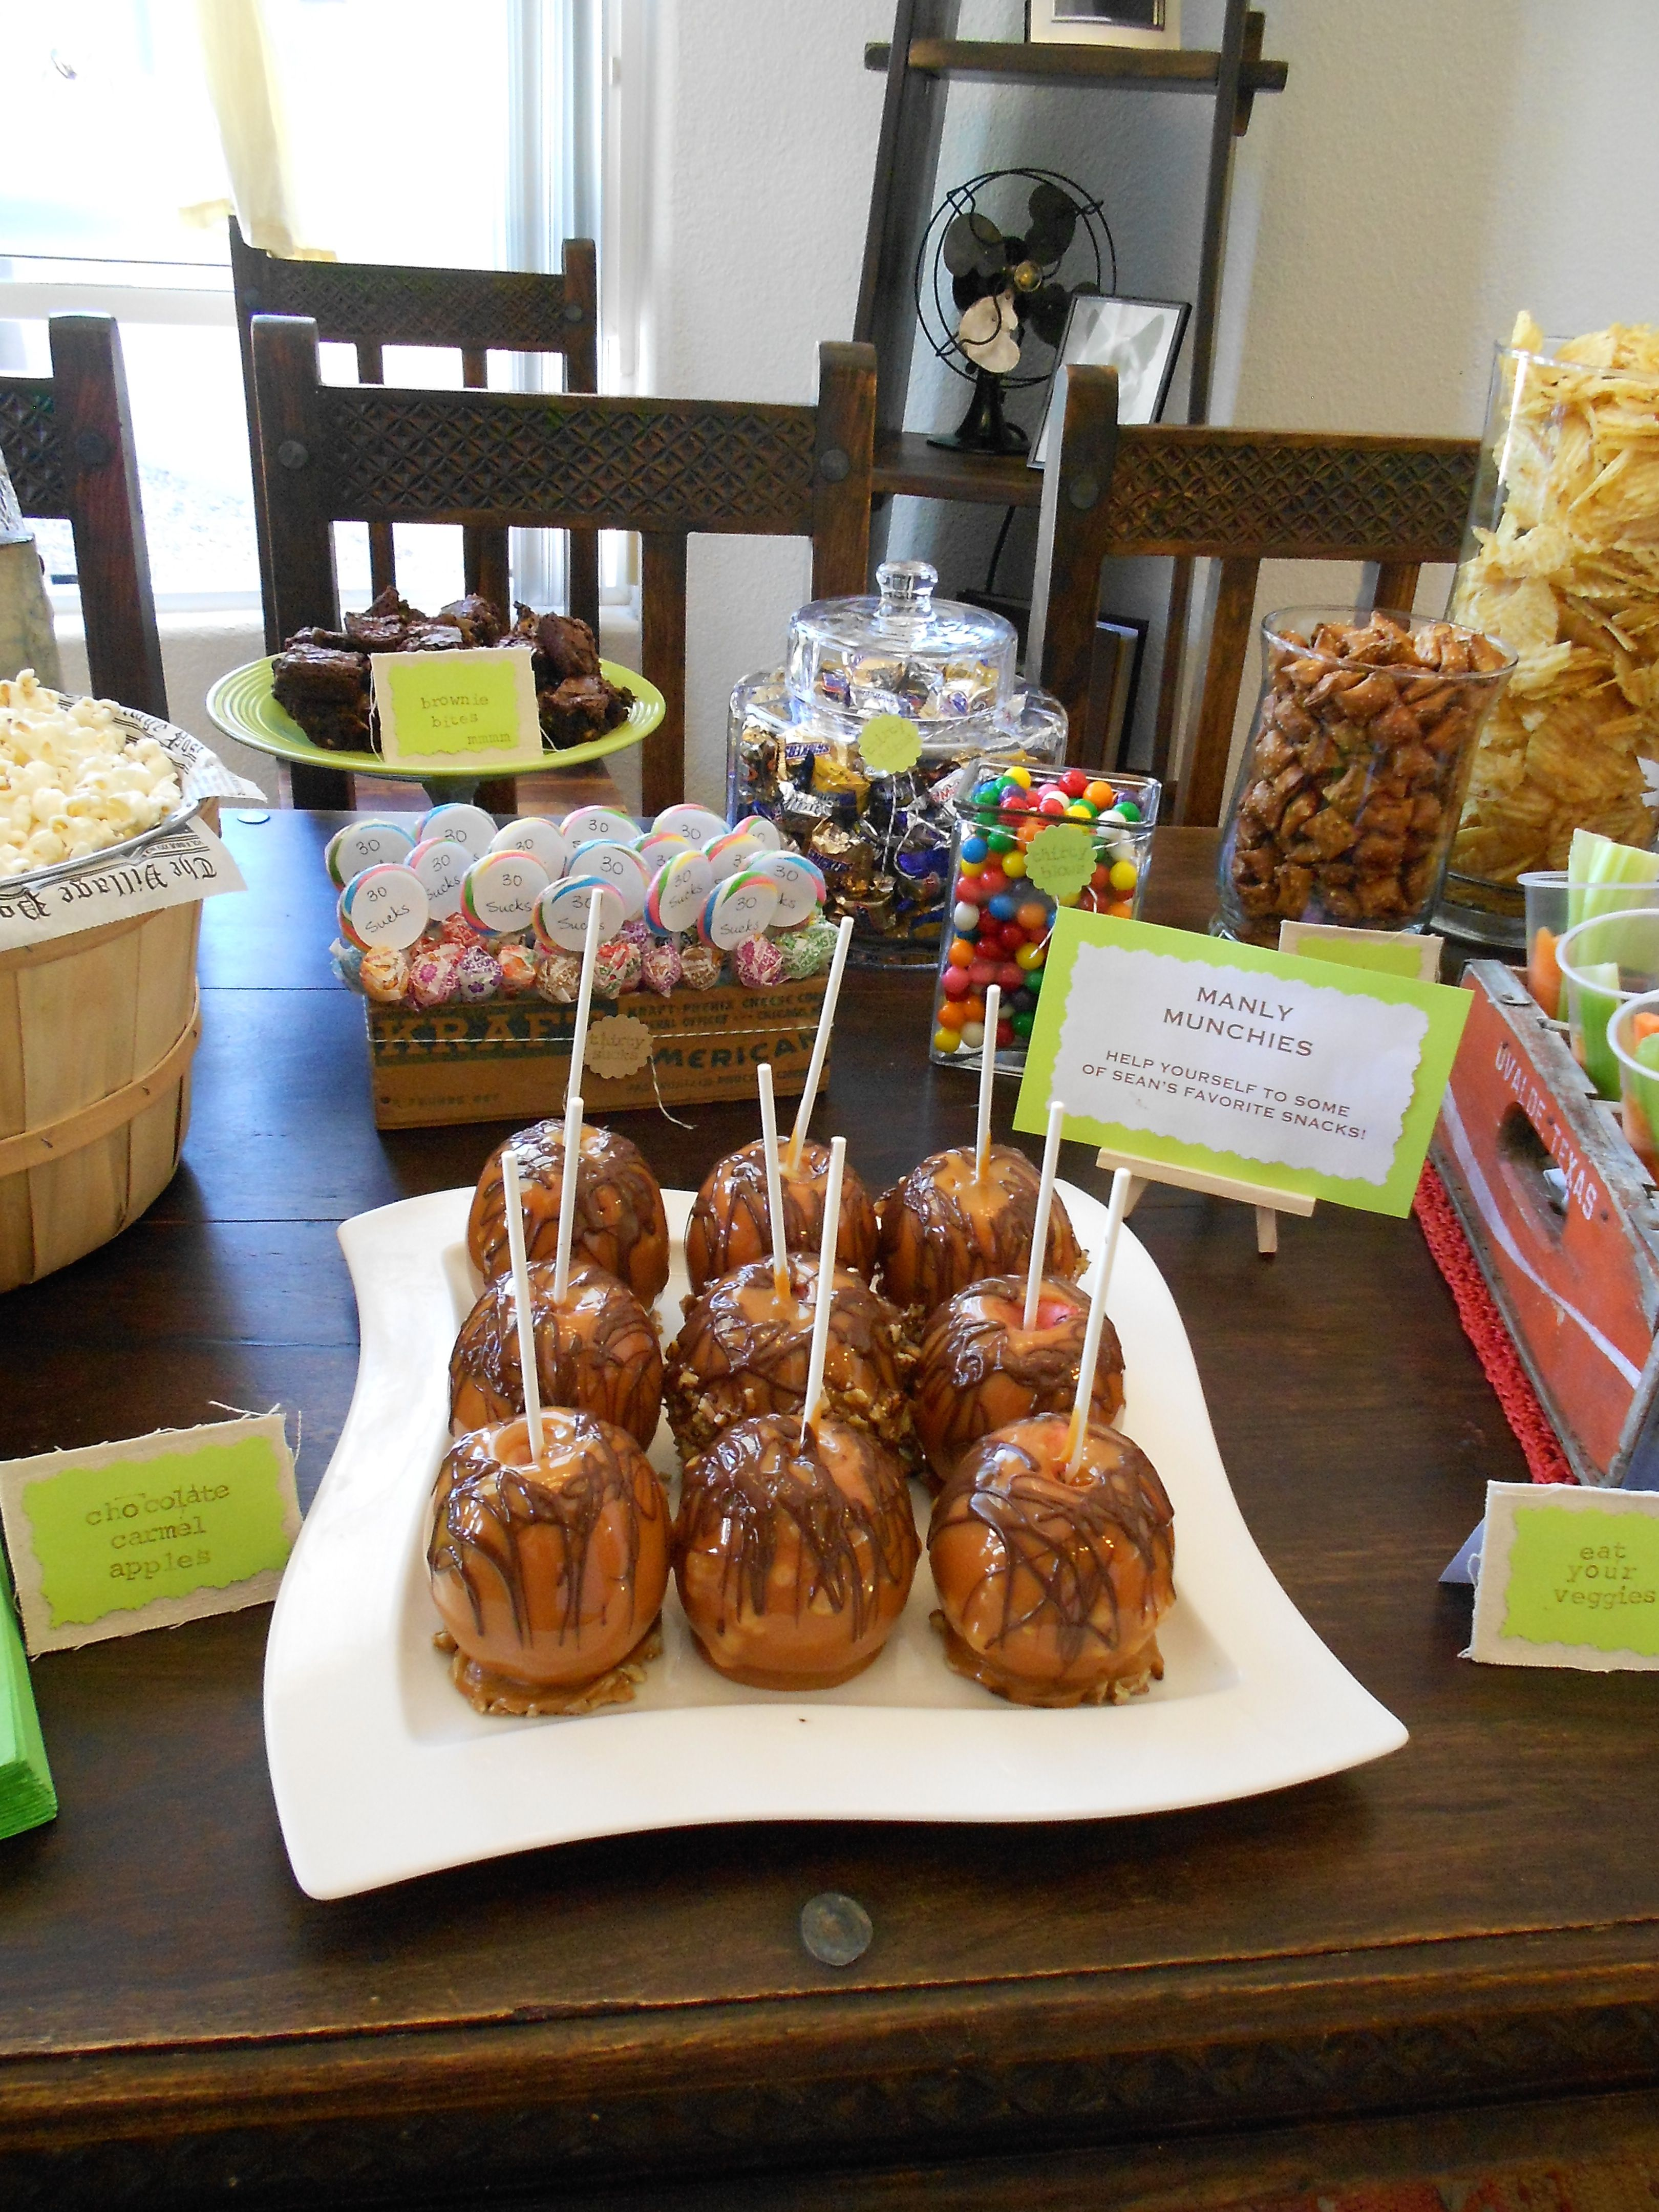 The Sweet Section Of The Snack Table Snacks Snack Table Caramel Apples